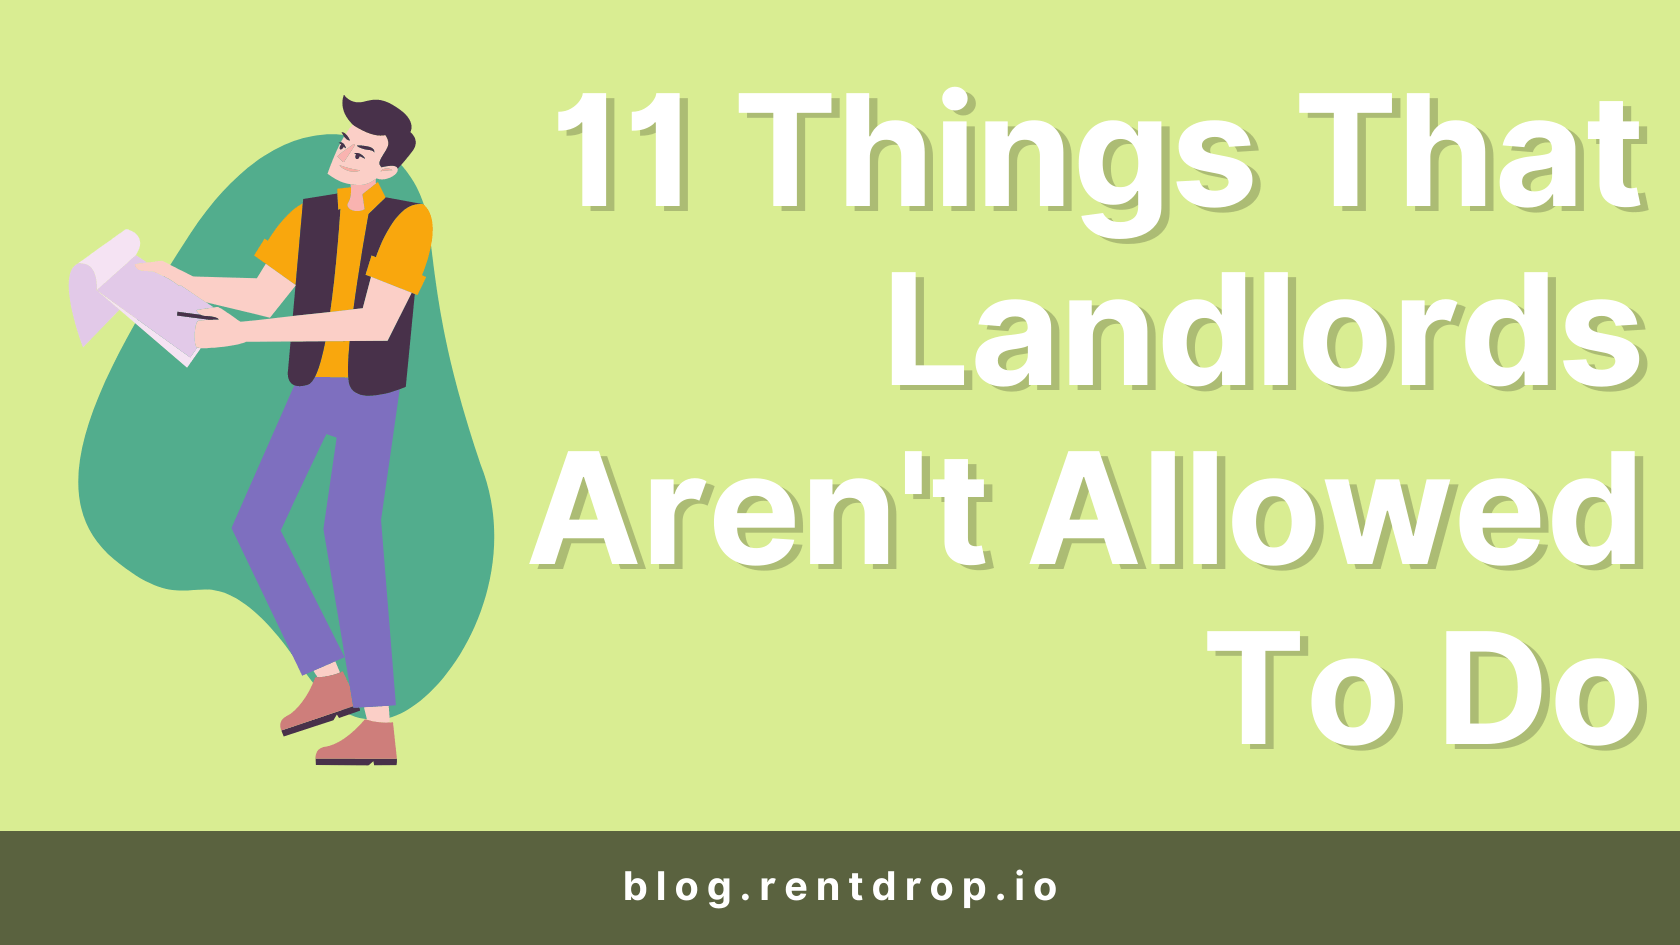 image of 11 Things That Landlords Aren't Allowed To Do